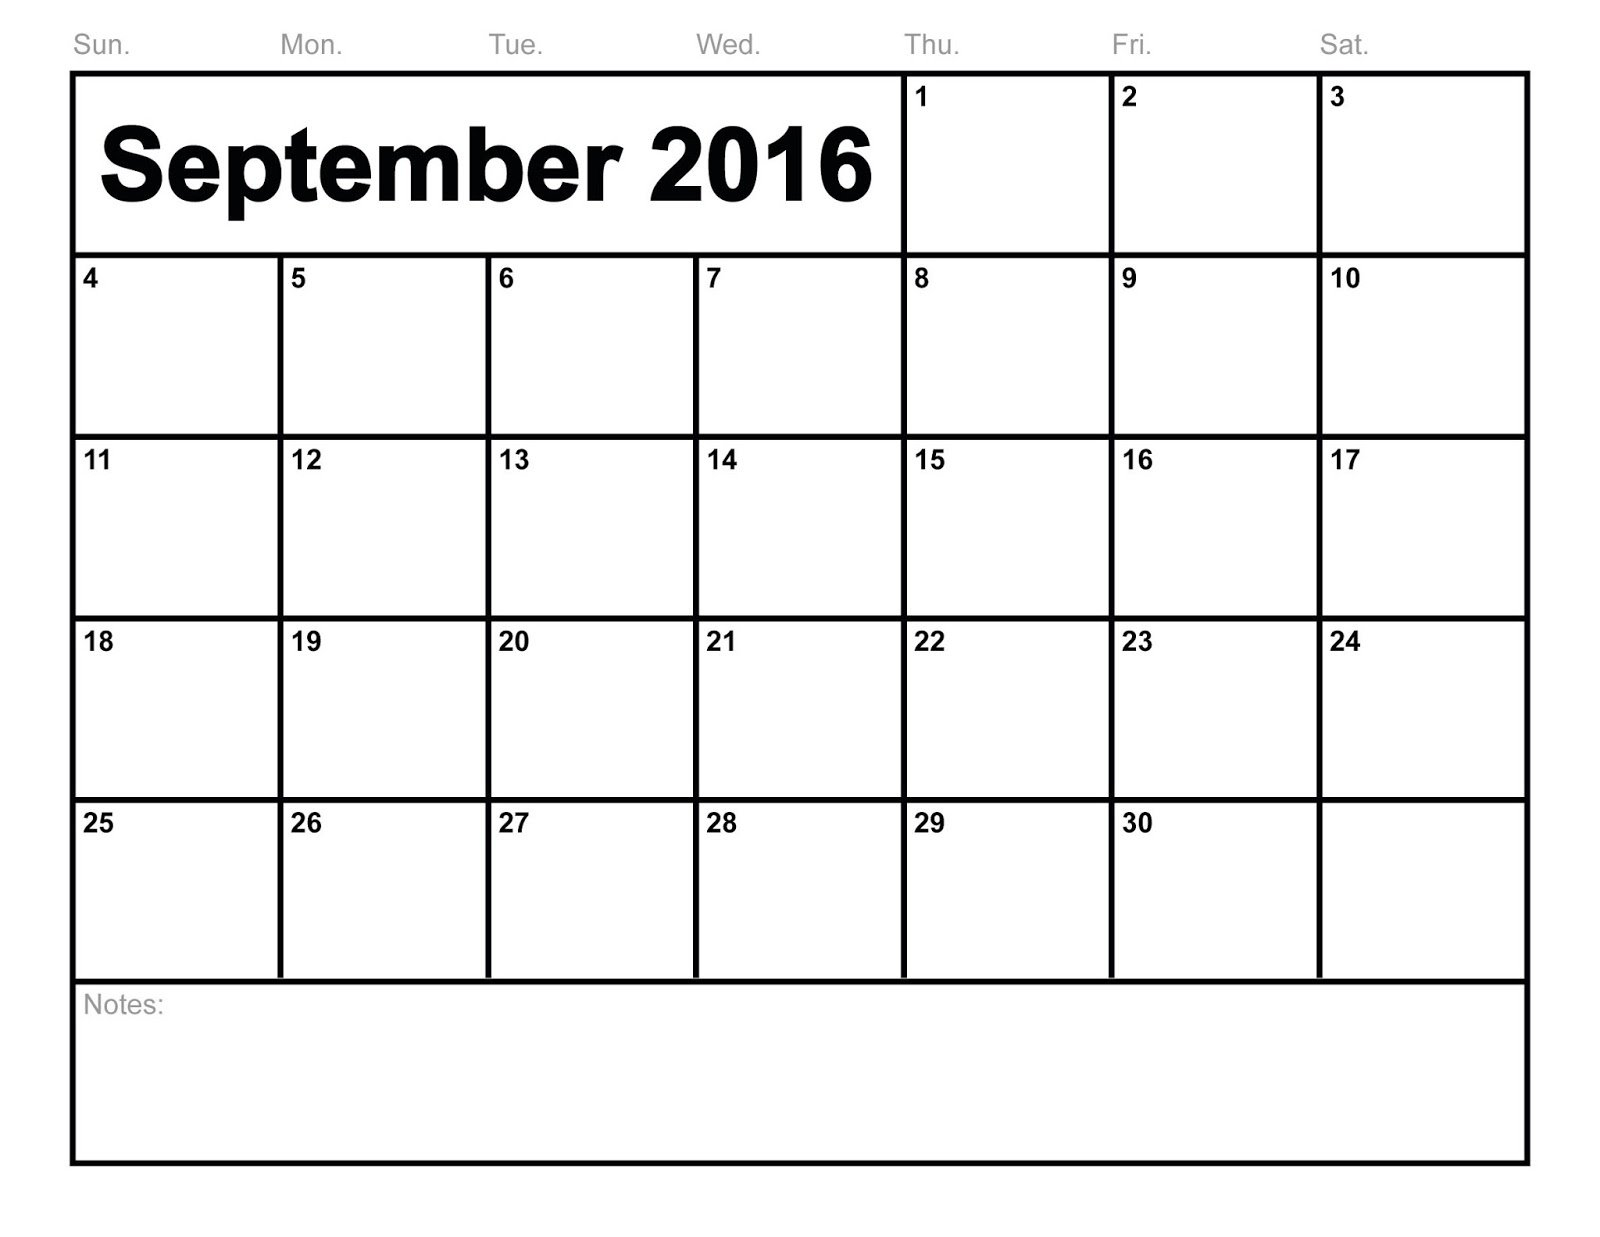 Monthly Calendars To Print Out And Fill : Free Calendar Online Birthday Calenders To Fill In